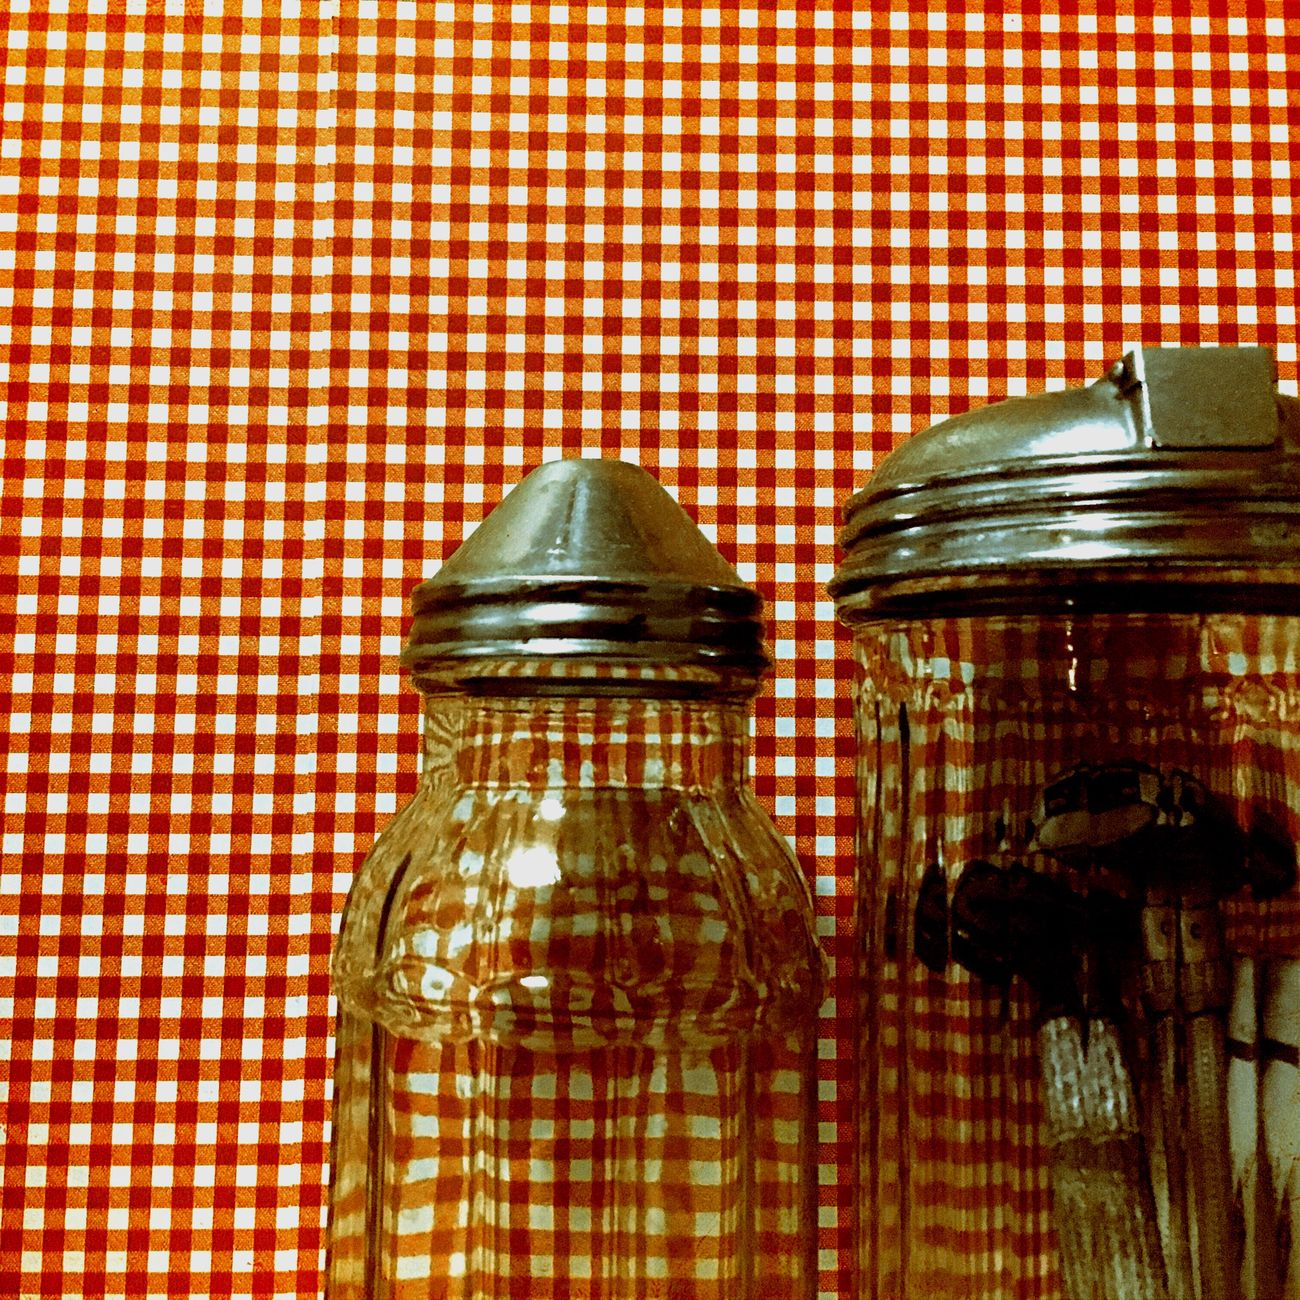 Variation Pattern Choice Indoors  Tablecloth Jars  Bathroom Country Style Country Life